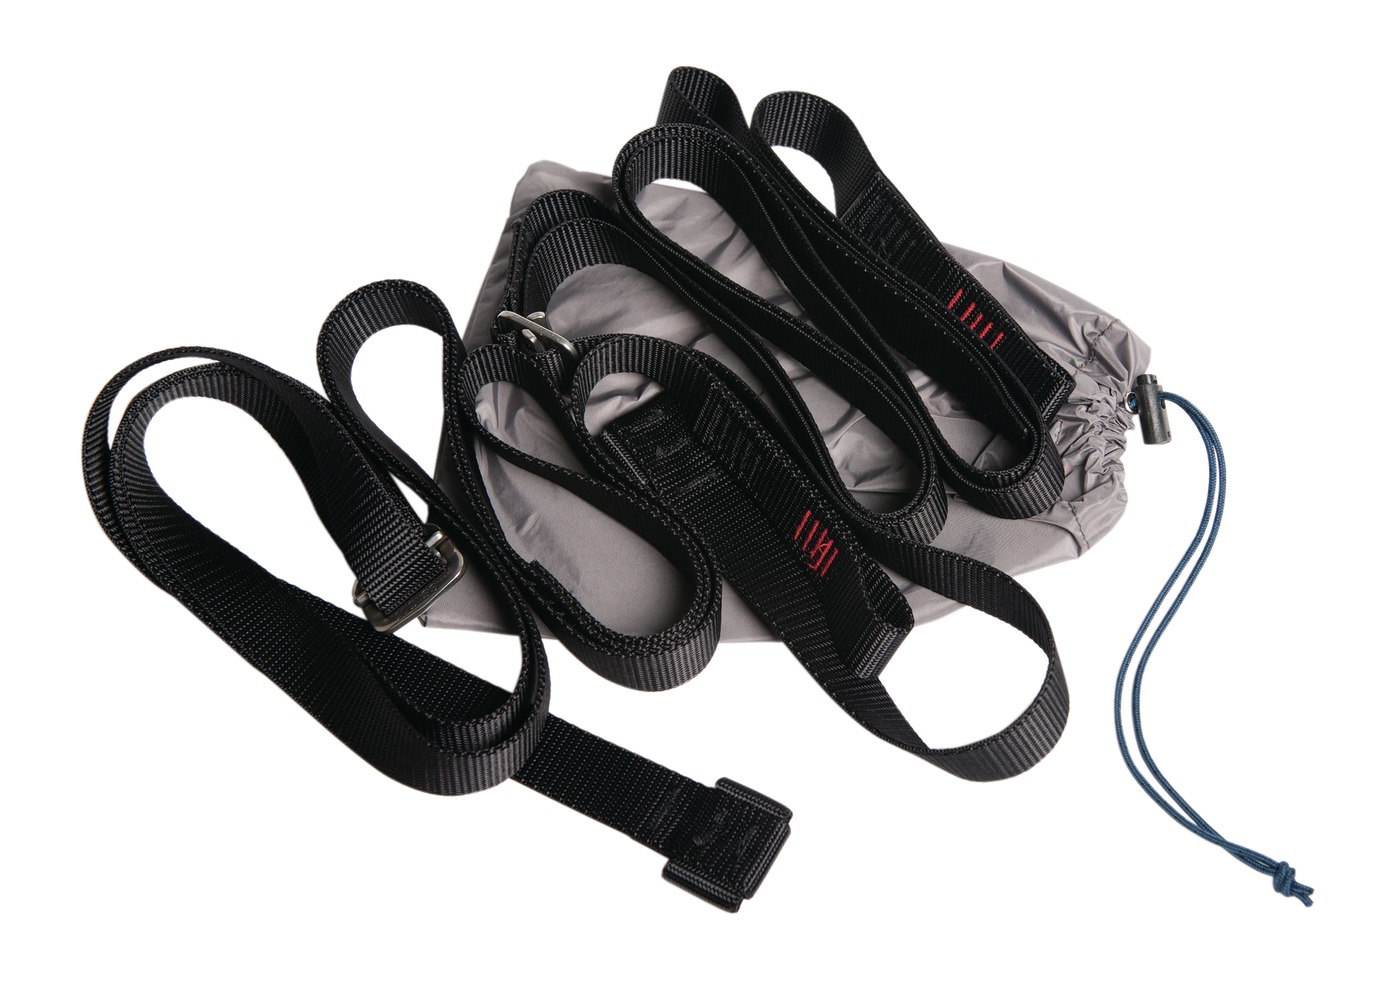 Therm-A-Rest Hammock Strap set-30